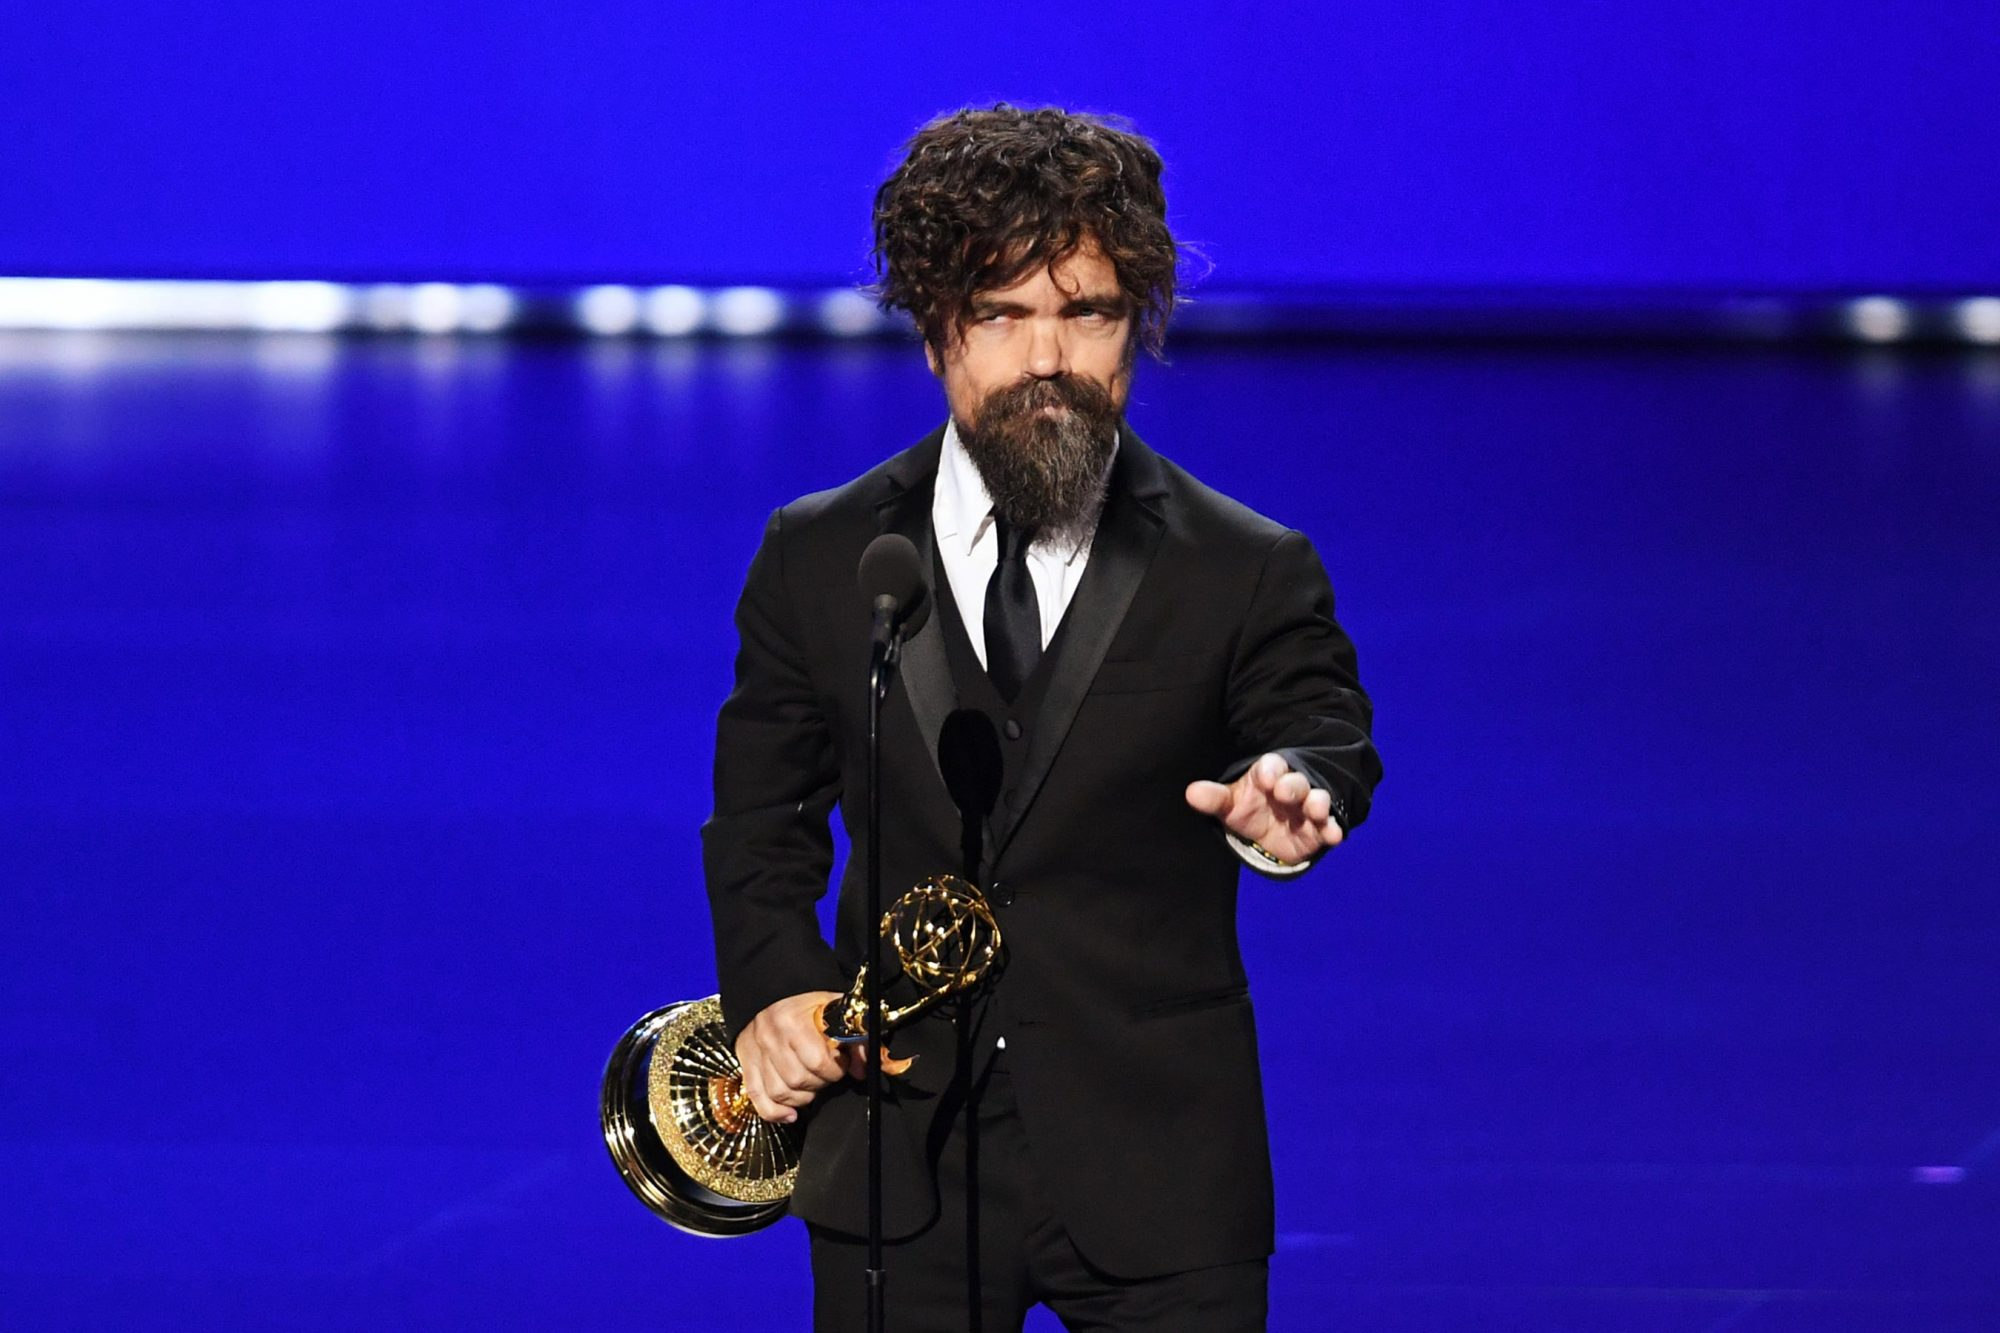 Peter Dinklage wins his final Game of Thrones Emmy